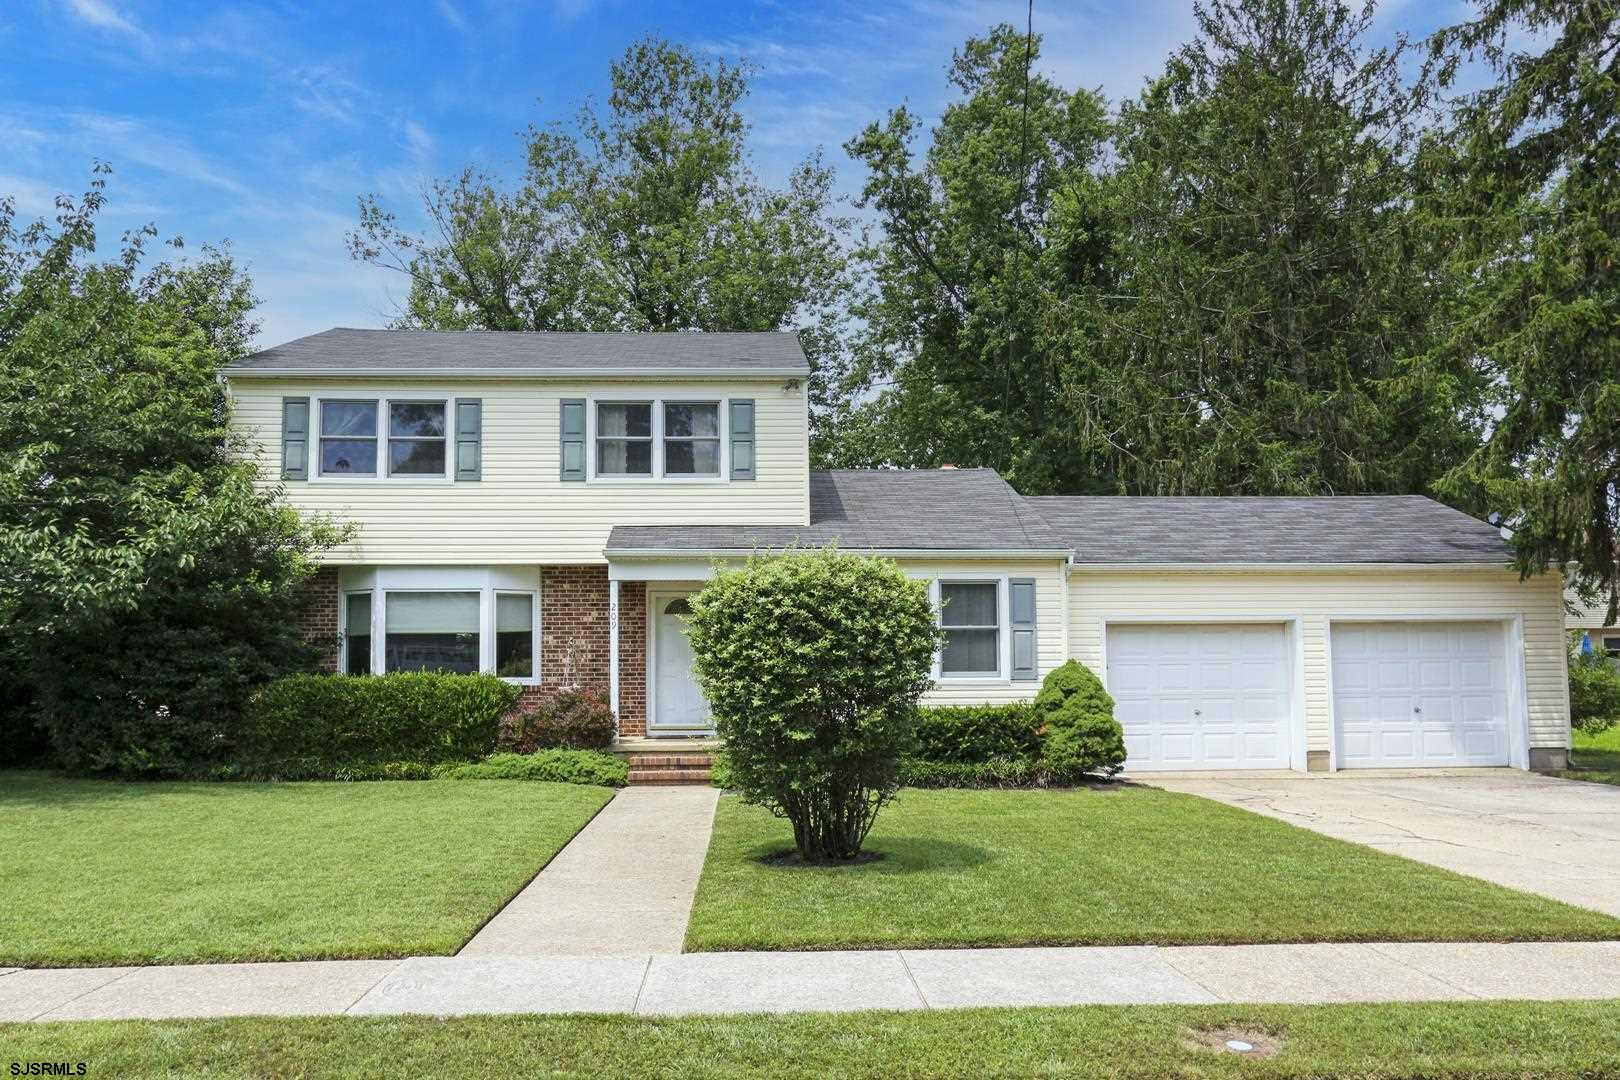 WELCOME HOME!!  Great Home on a Quiet Street Only One Block to the Bike Path.  Featuring 4 Bedrooms,